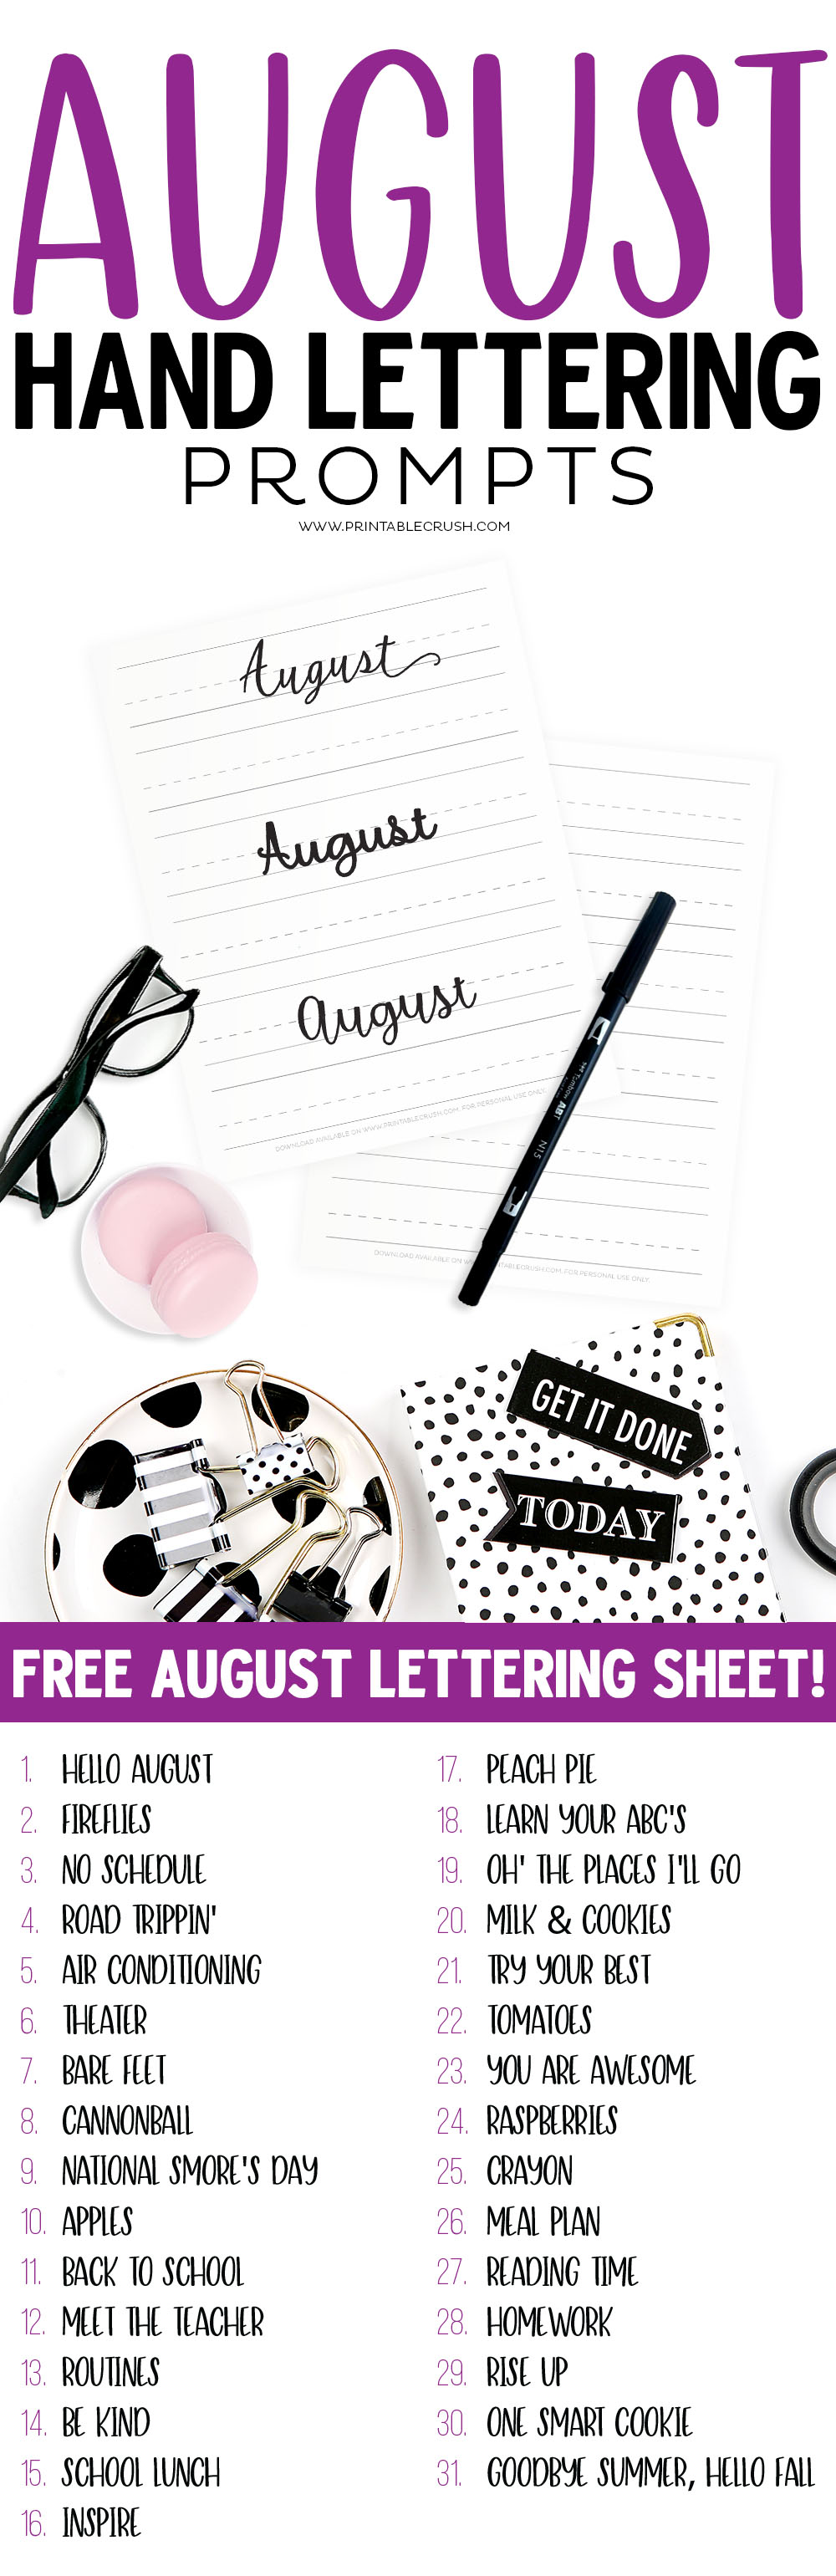 Get 31 AUGUST Hand Lettering Prompts plus a FREE practice sheet in this blog series to improve your hand lettering skills. #handlettering #tombowpro via @printablecrush